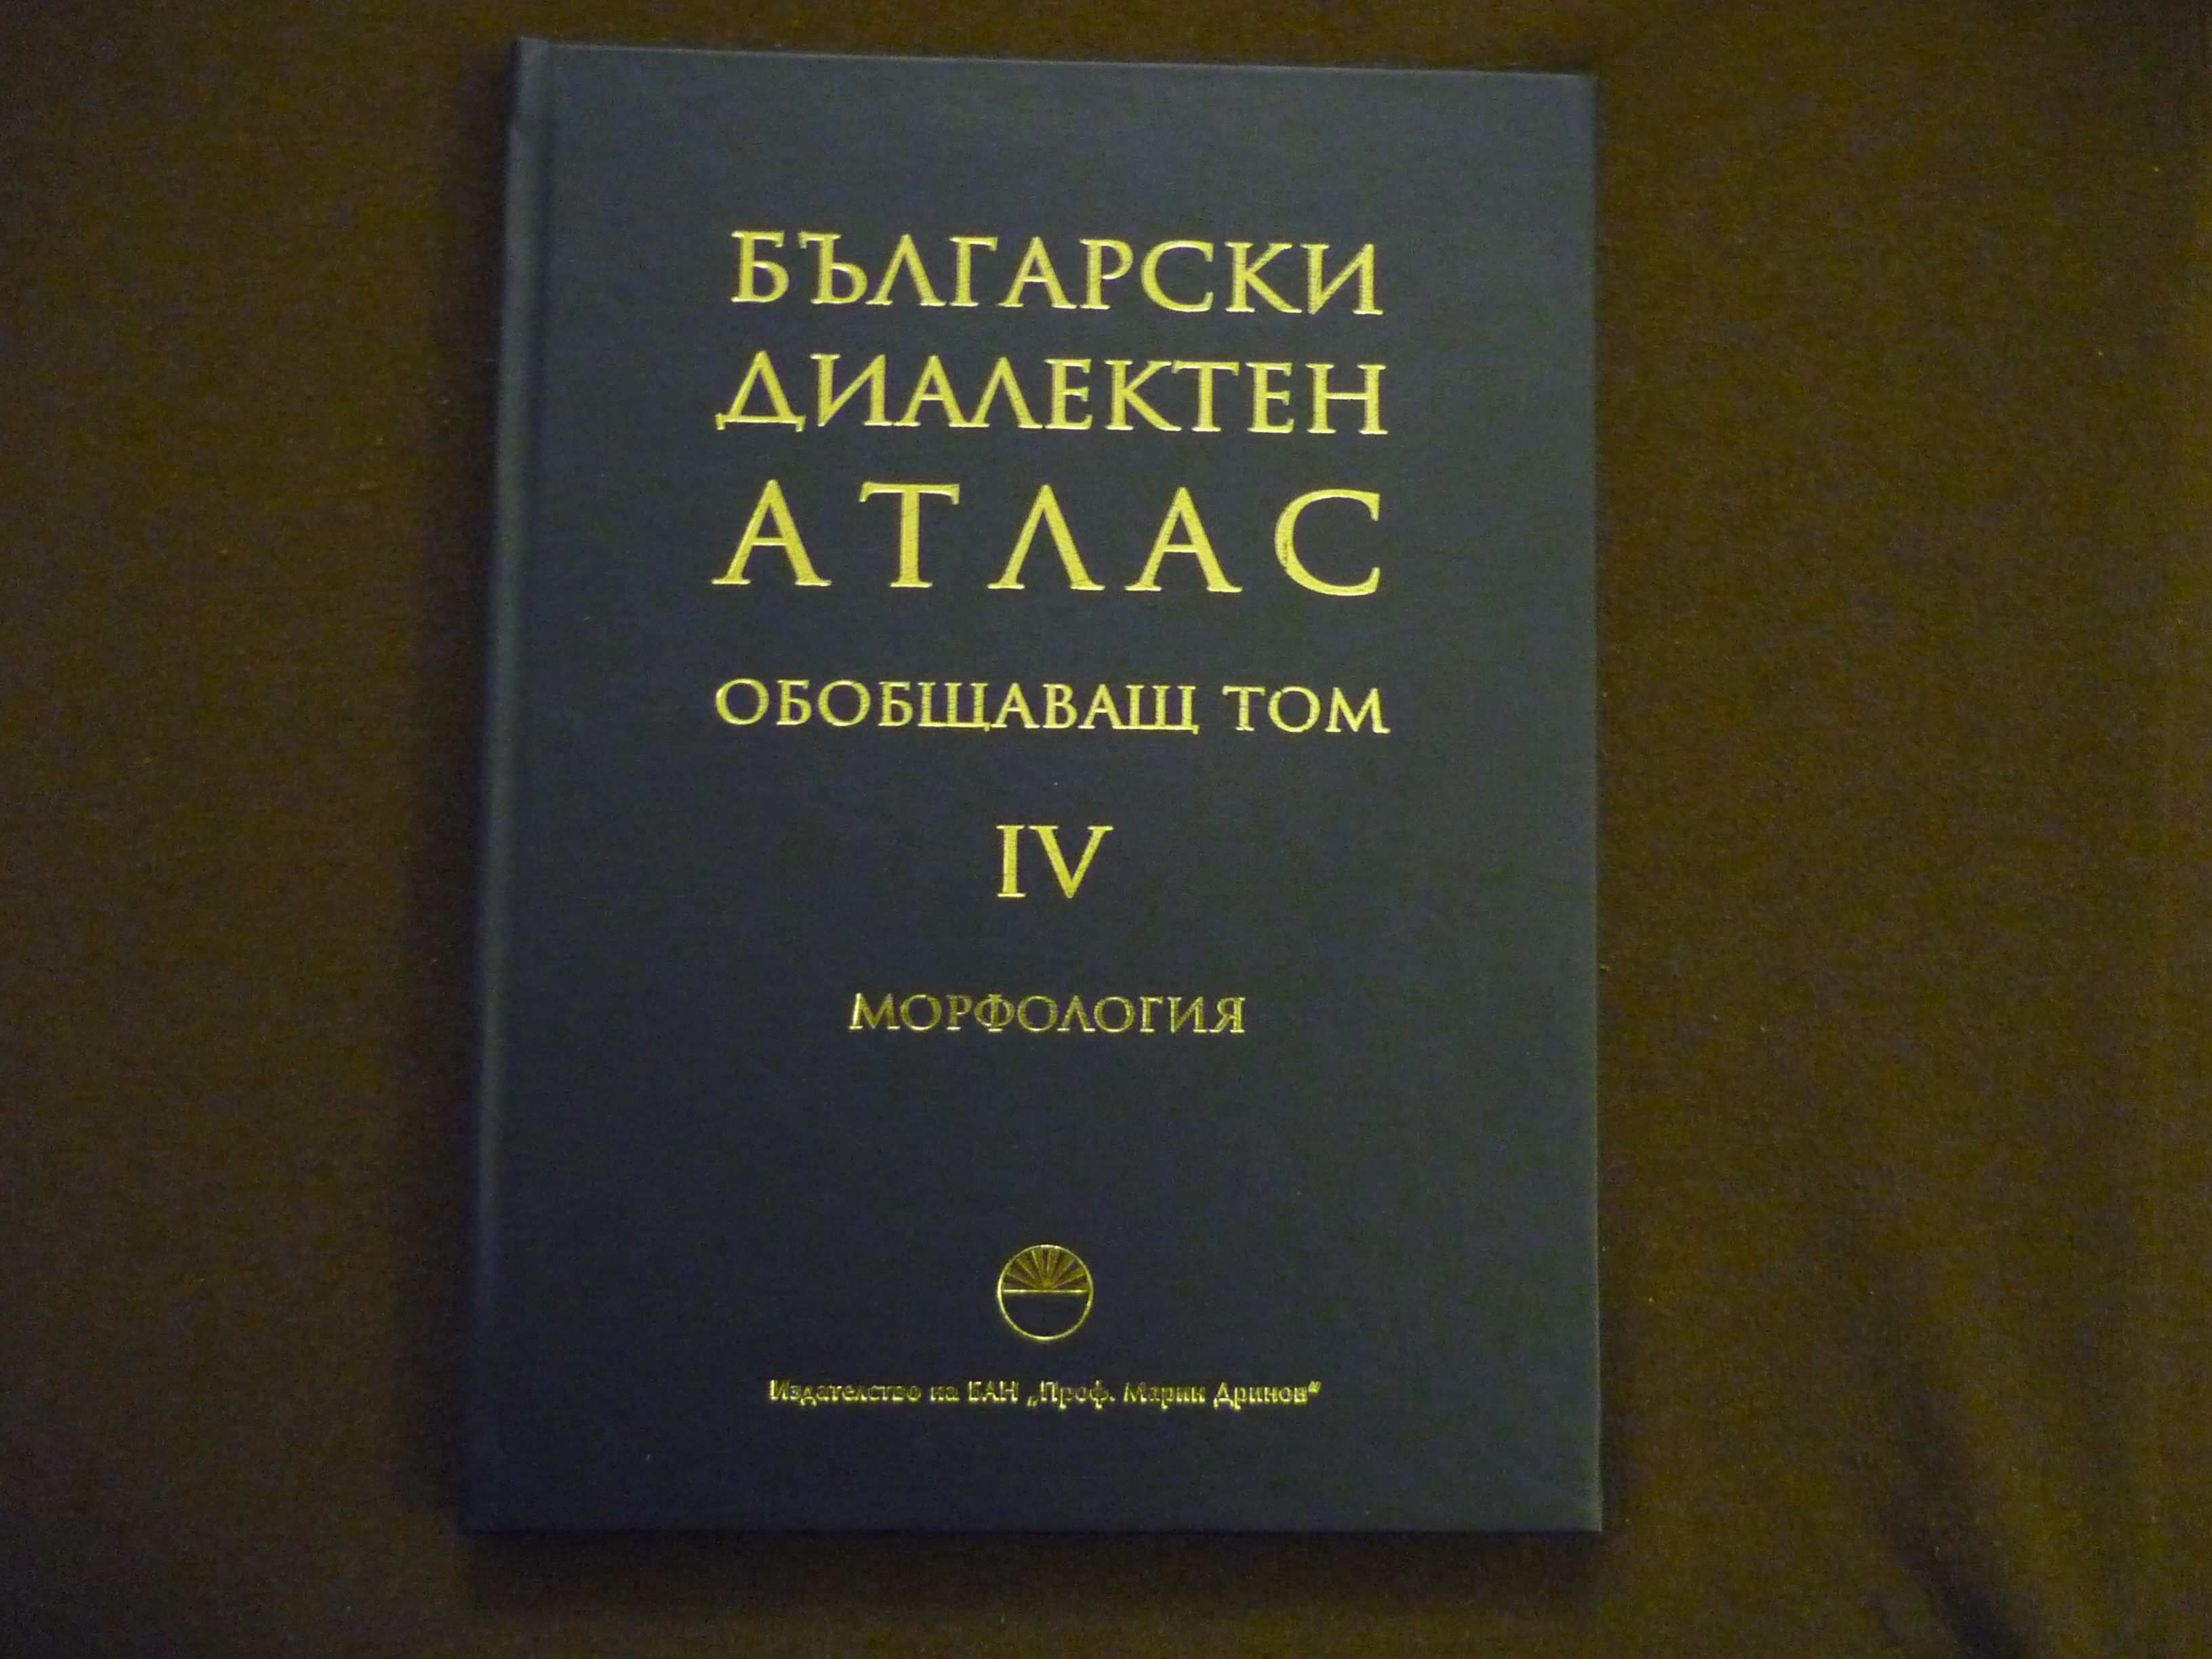 Bulgarian Dialect Atlas. Overview. Volume 4. Morphology